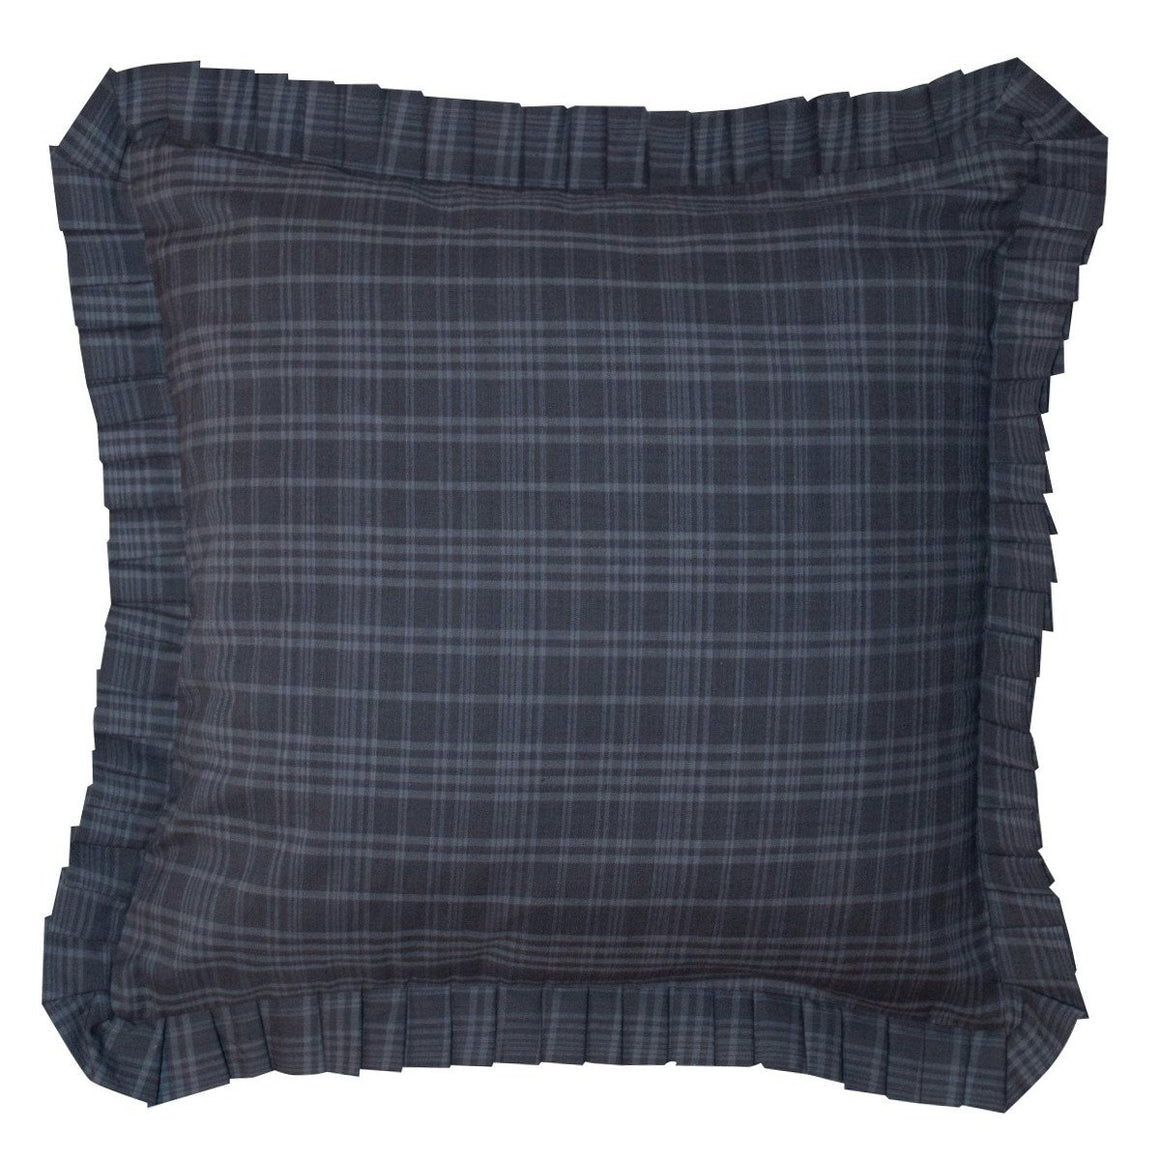 Indigo Plaid Ruffled Toss Pillow